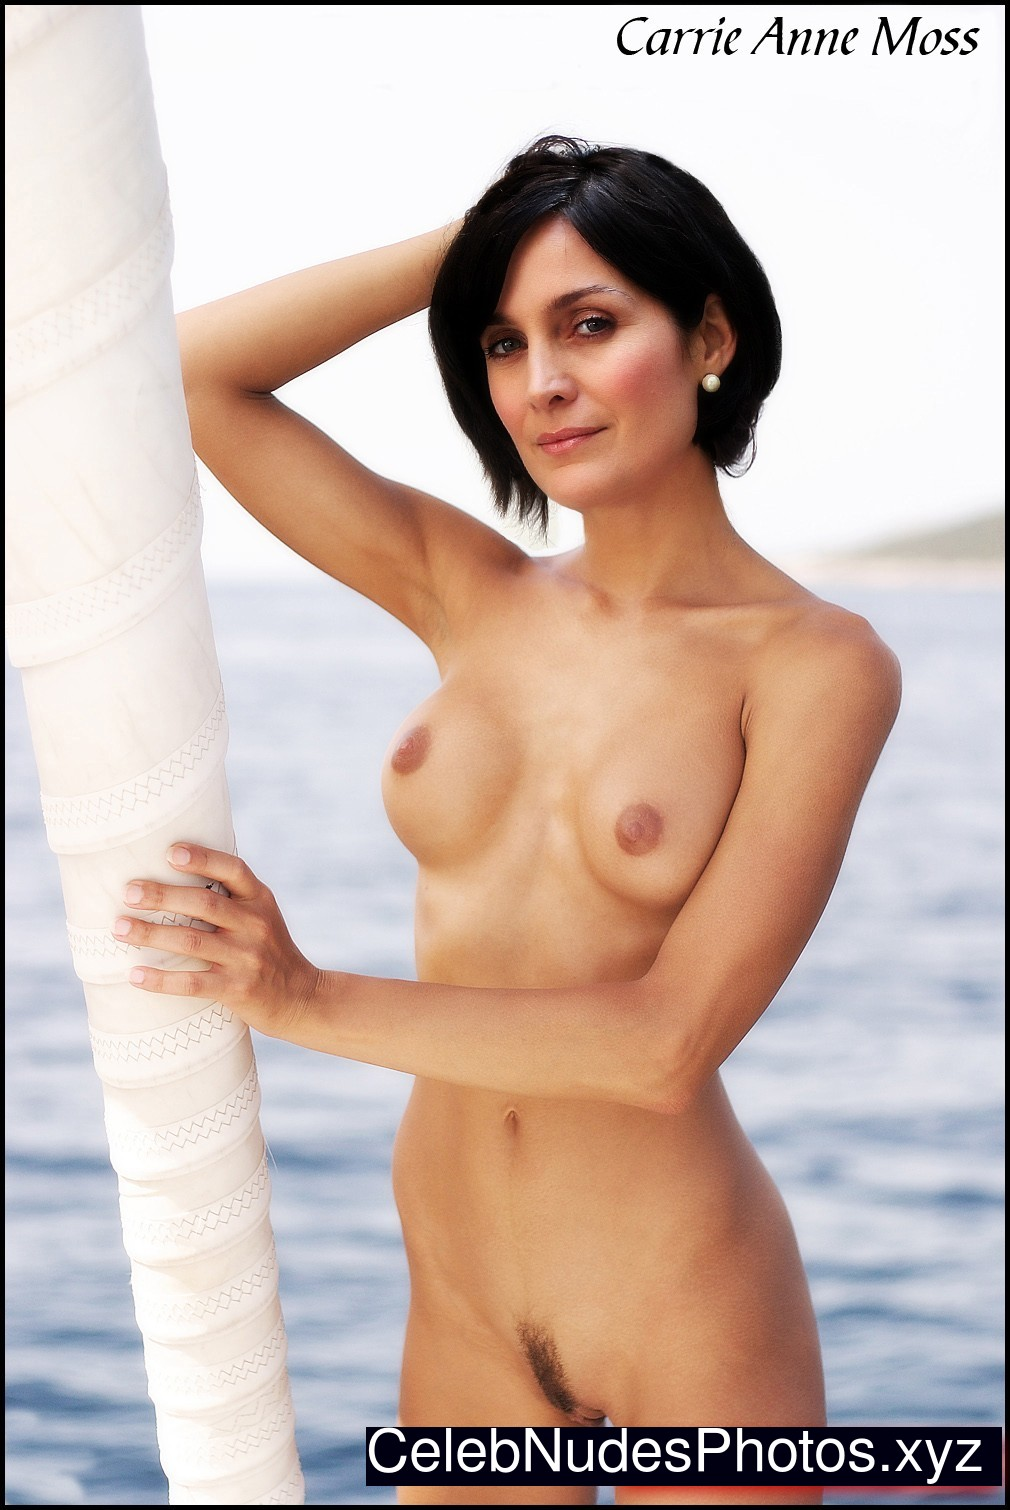 Naked pictures carrie anne moss